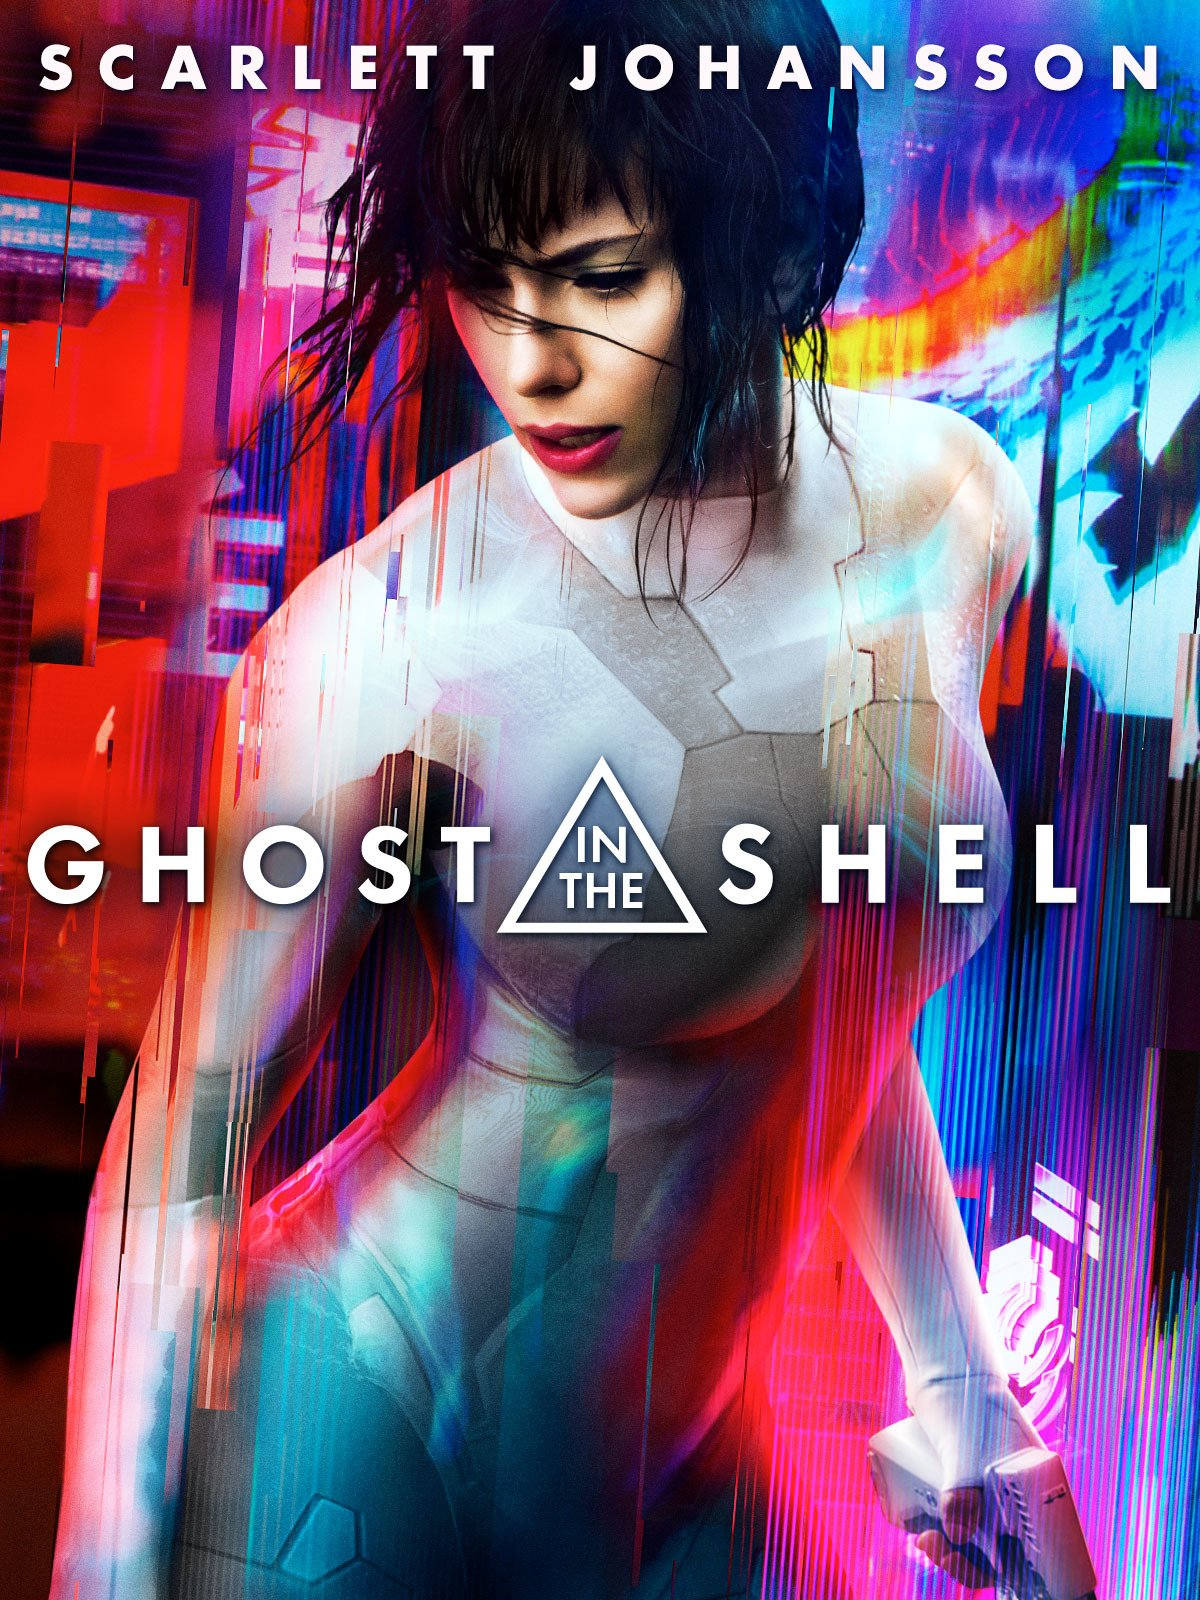 Watch Ghost In The Shell 2017 4k Uhd Prime Video